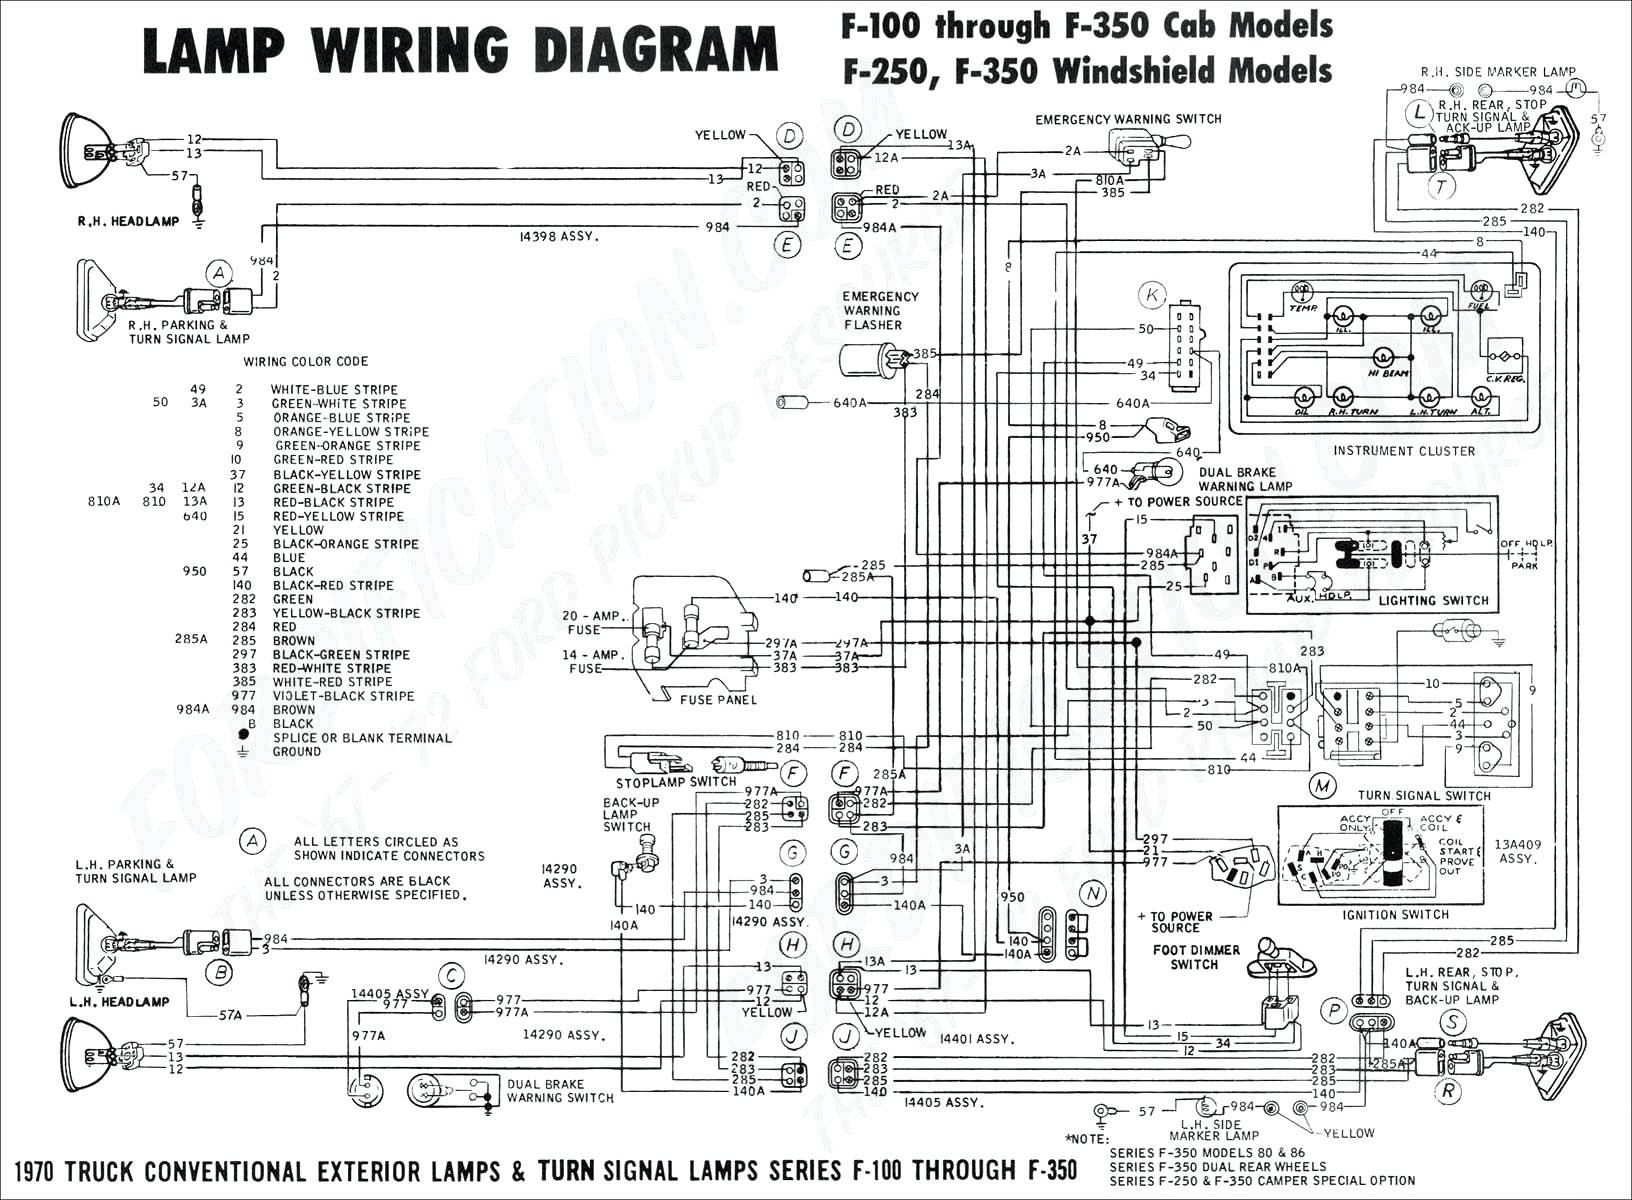 1998 Ford Contour Engine Diagram